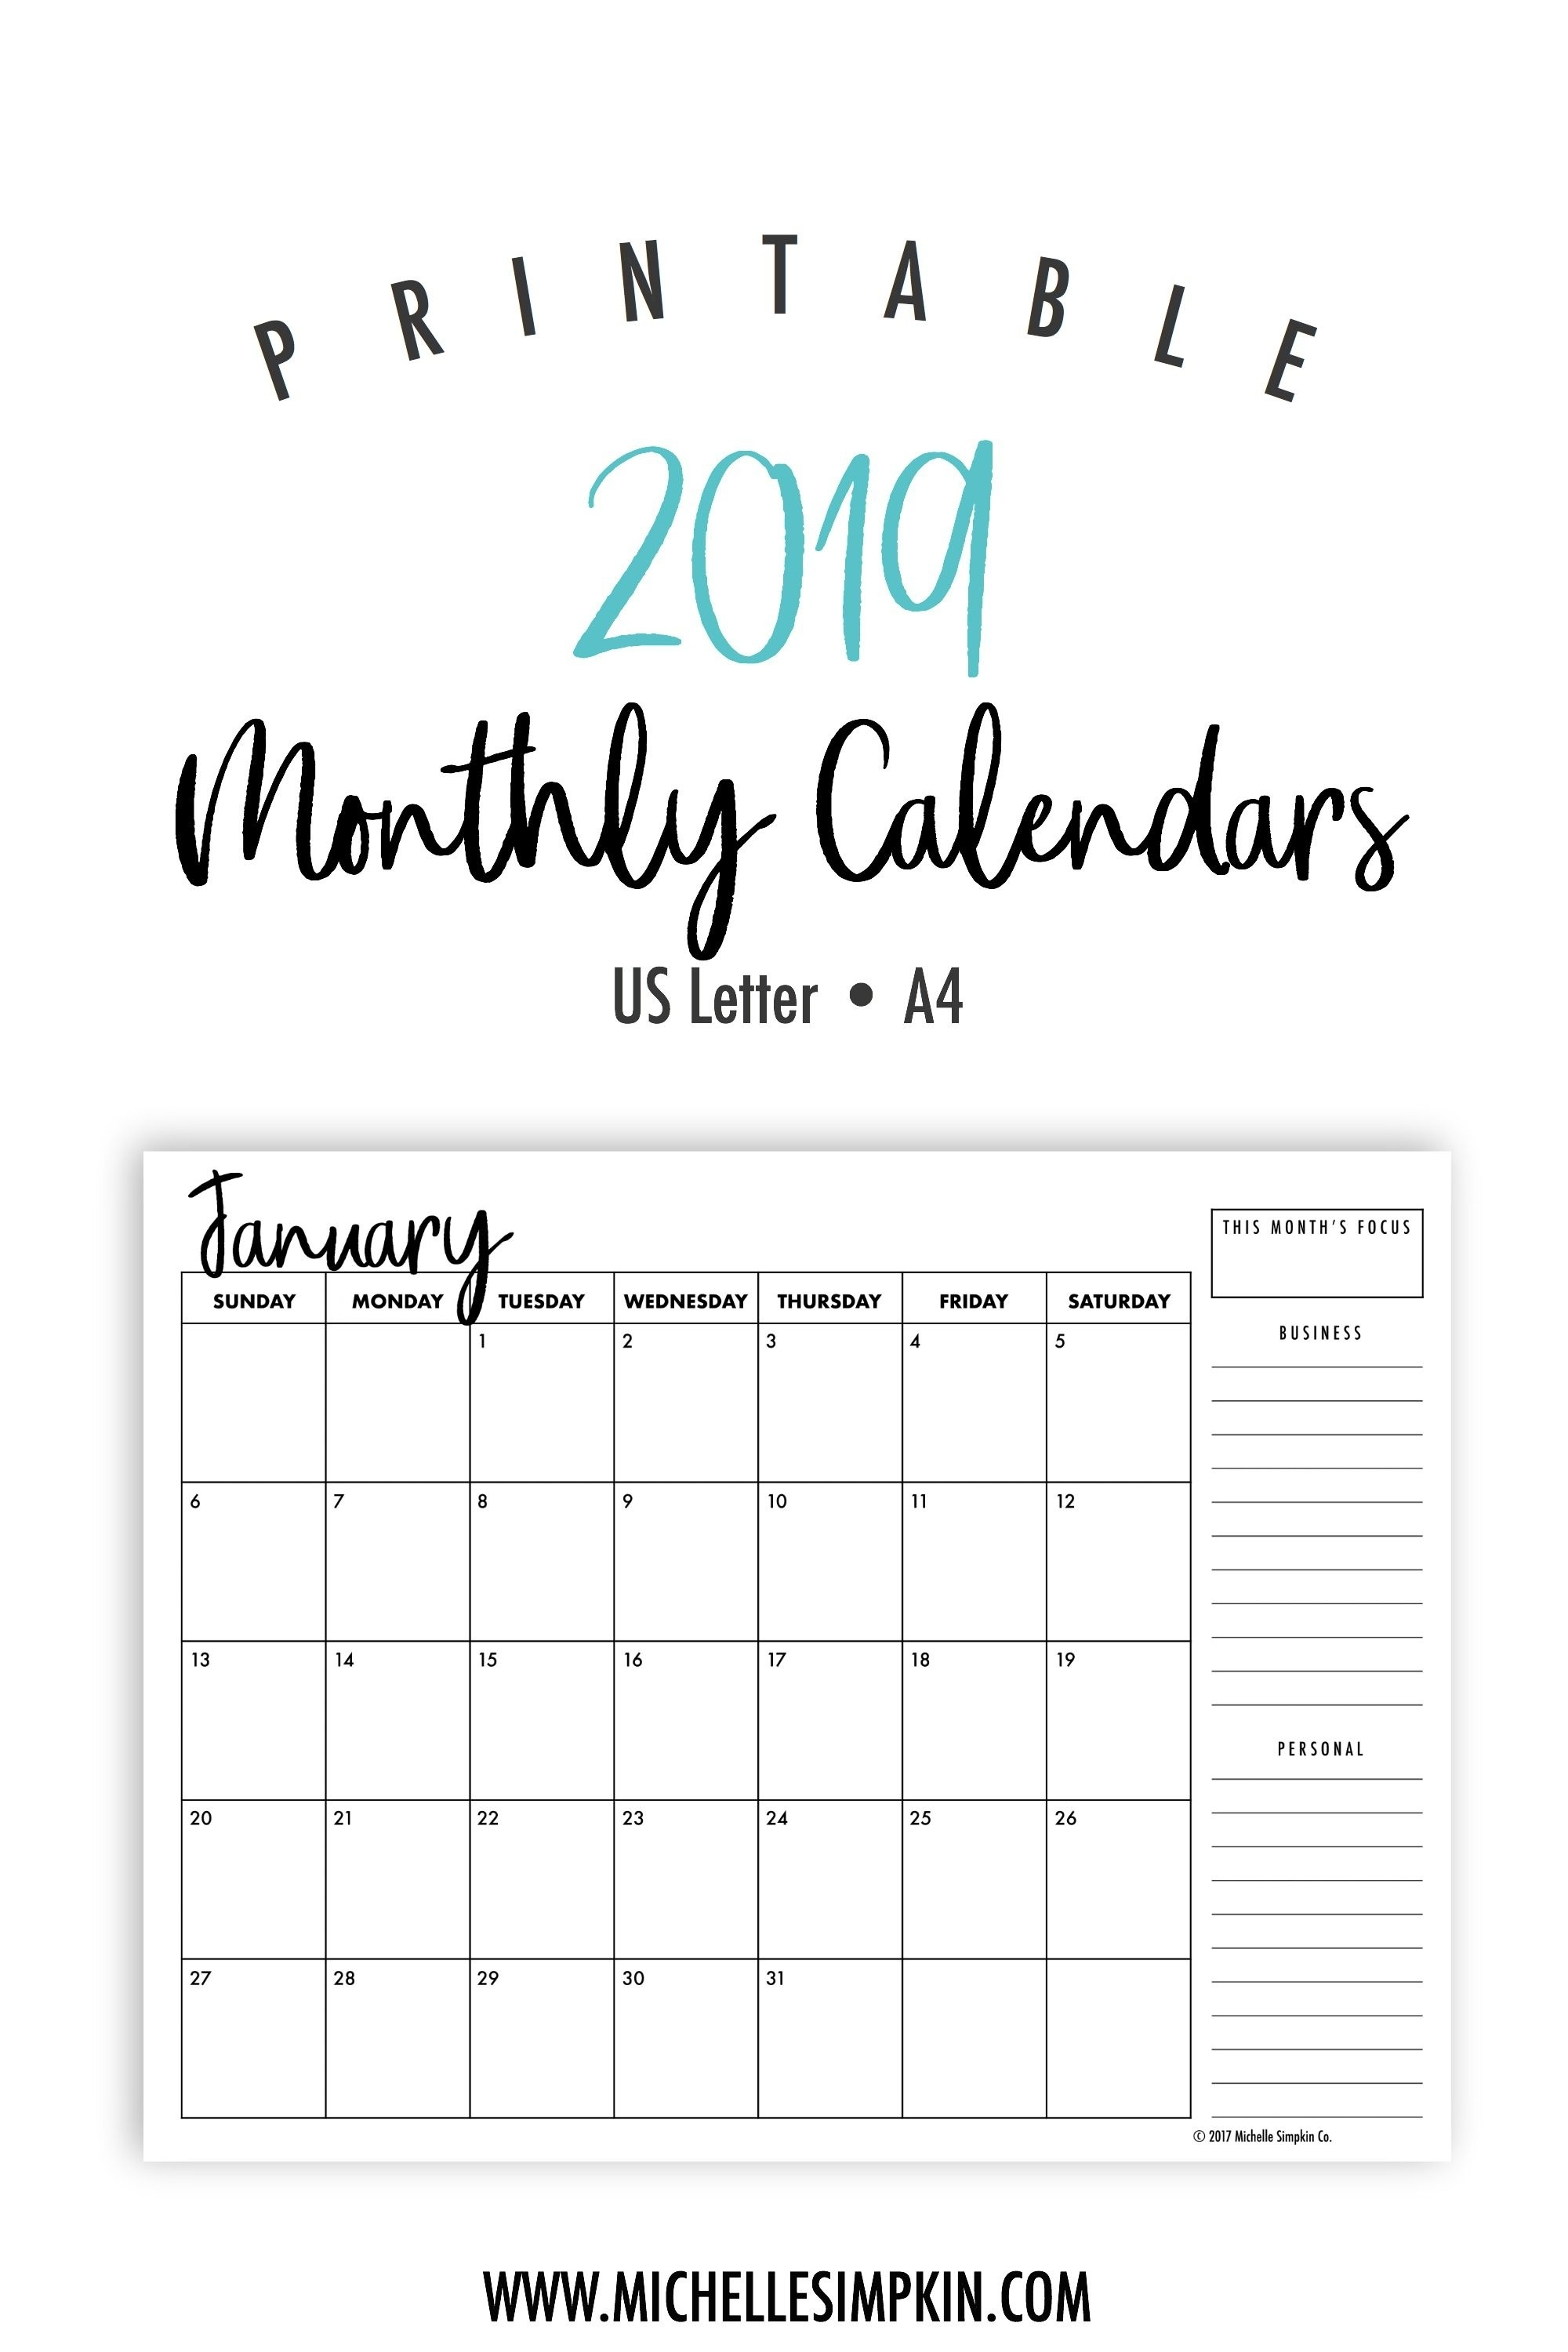 2019 Printable Monthly Calendars • Landscape • Us Letter • A4 regarding Monthly Calendar Template A3 Landscape